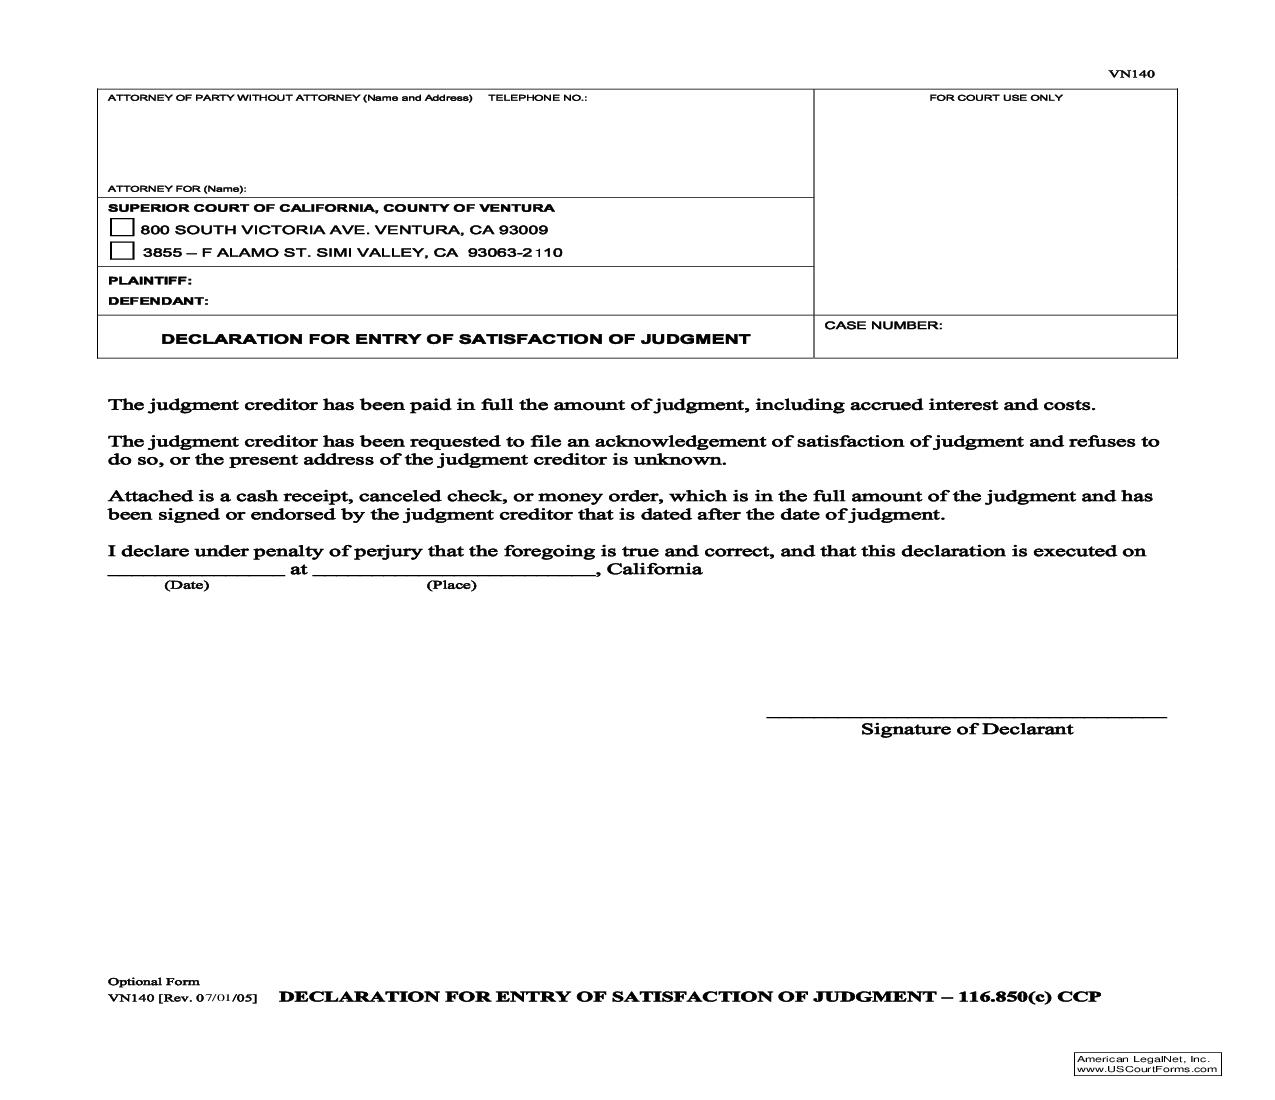 Declaration For Entry Of Satisfaction Of Judgment {VN140} | Pdf Fpdf Doc Docx | California